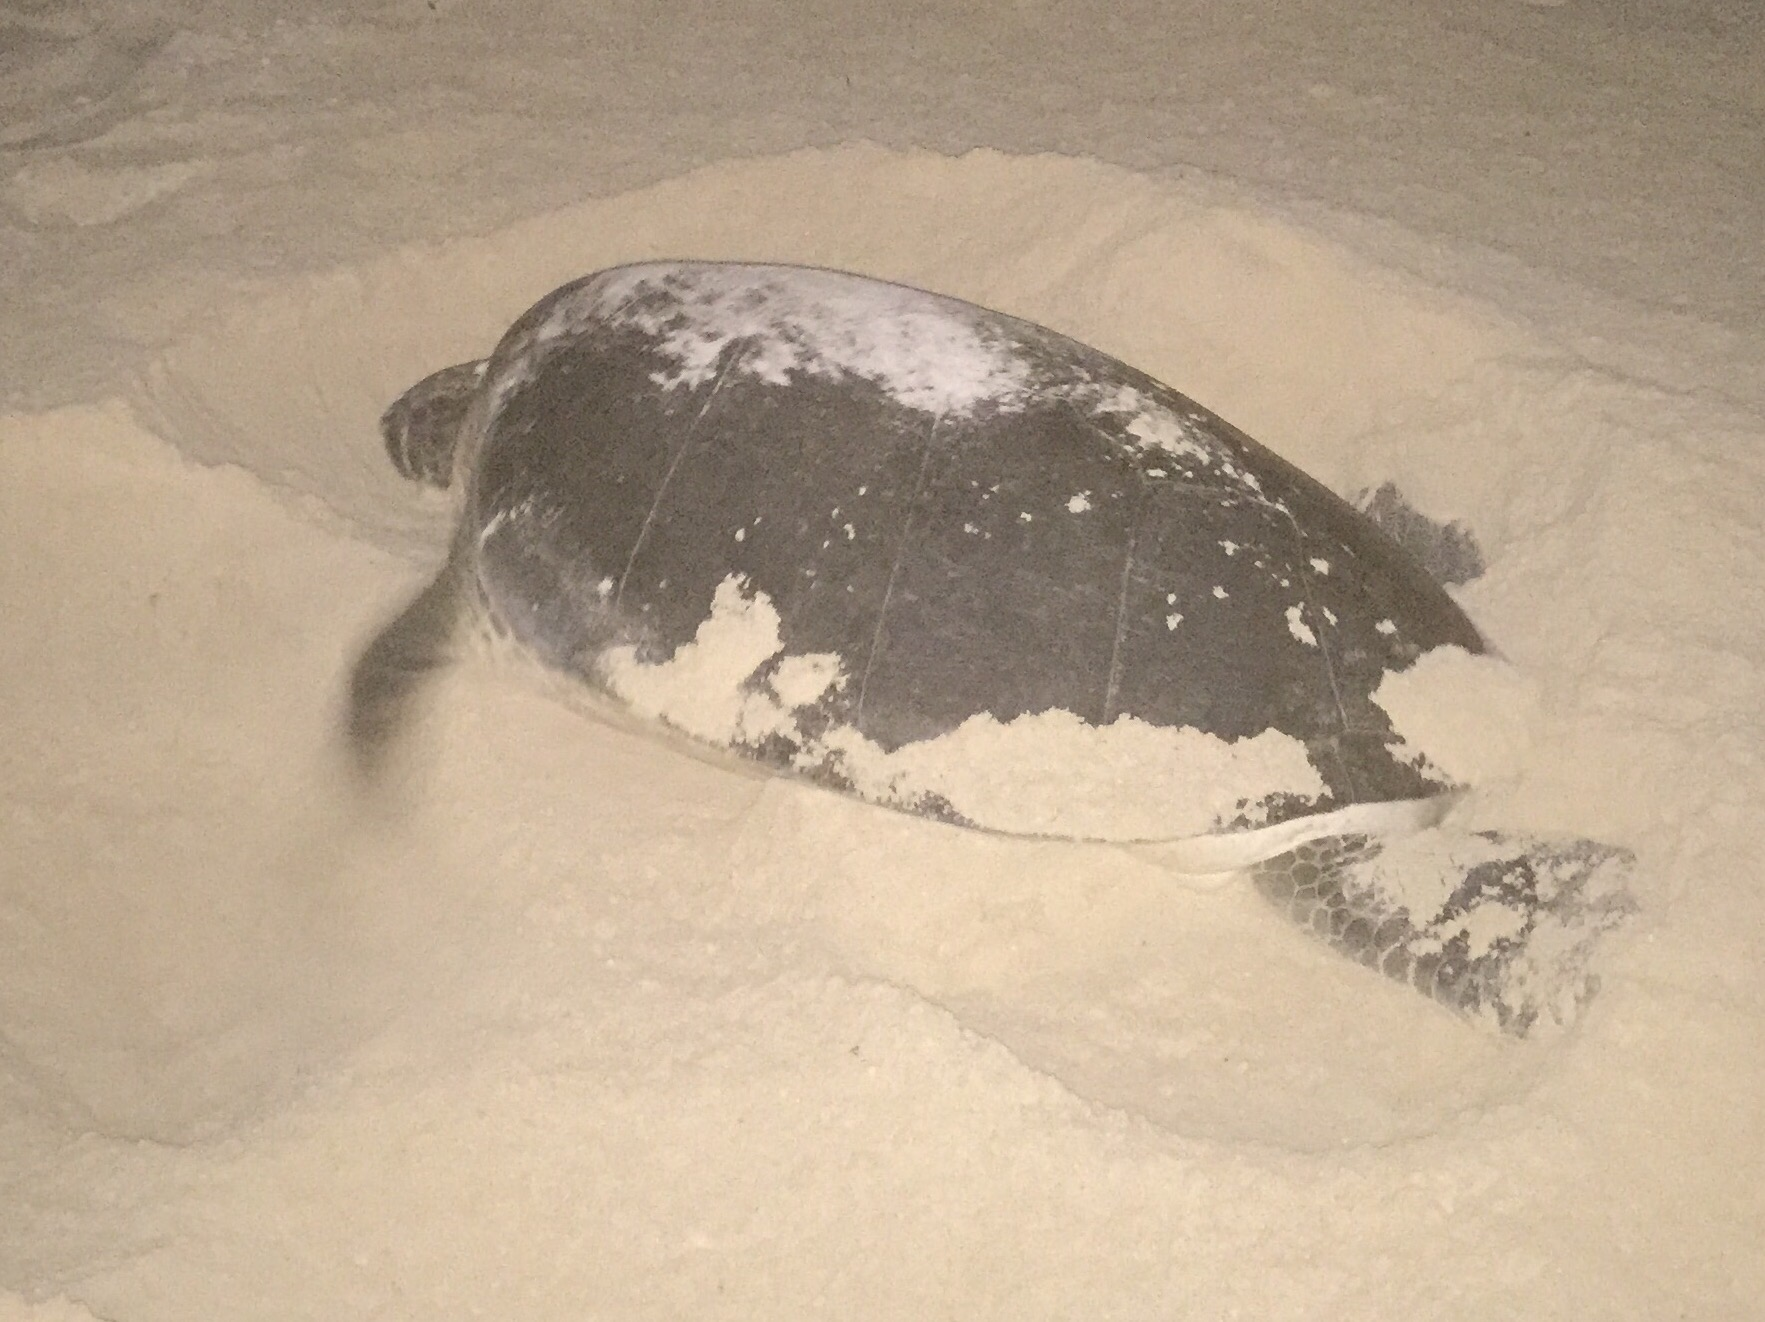 A female sea turtle laying her eggs on a Cancun beach. Photo copyright Valerie Duty Citrano www.PieLadyLife.com